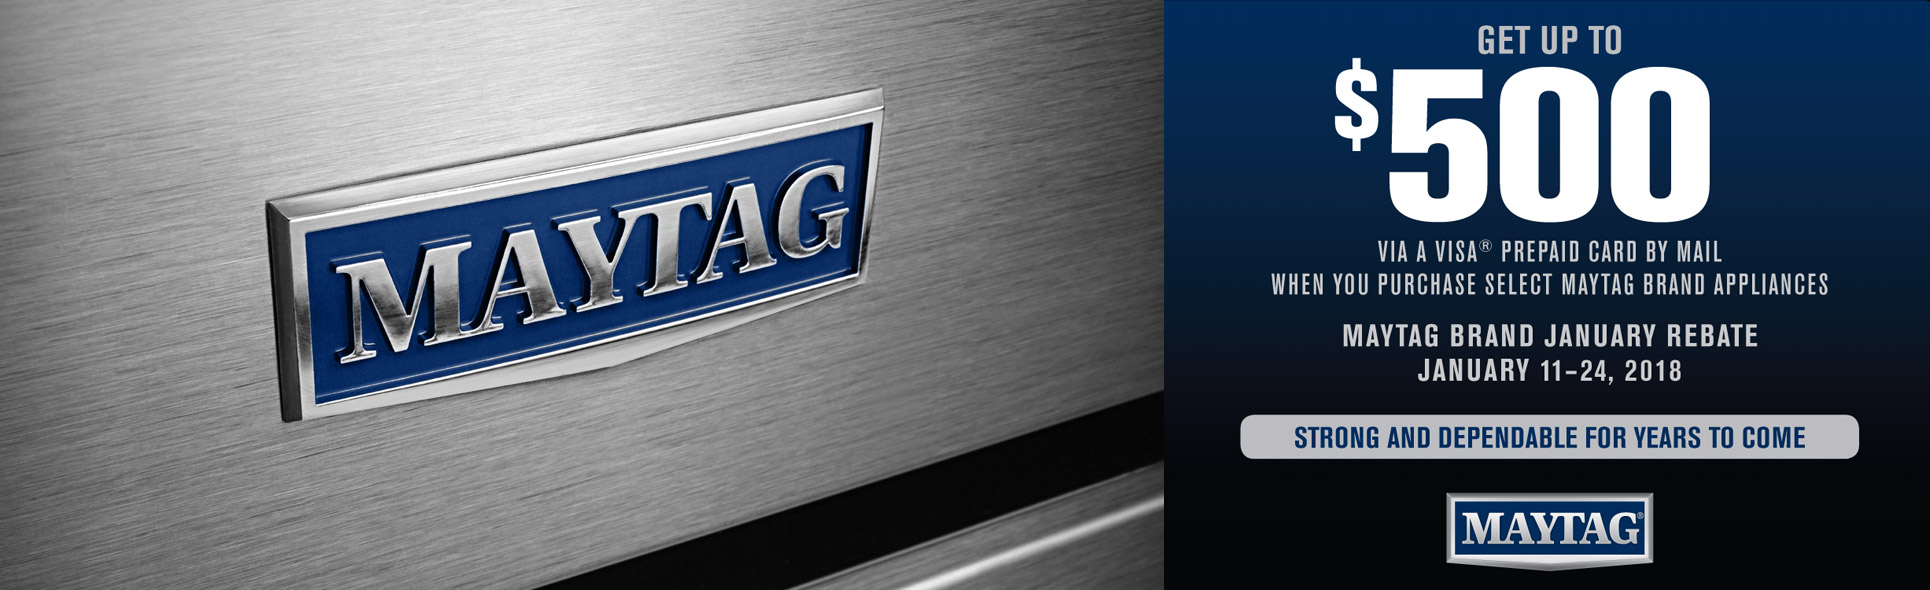 Maytag Package Savings up to $500